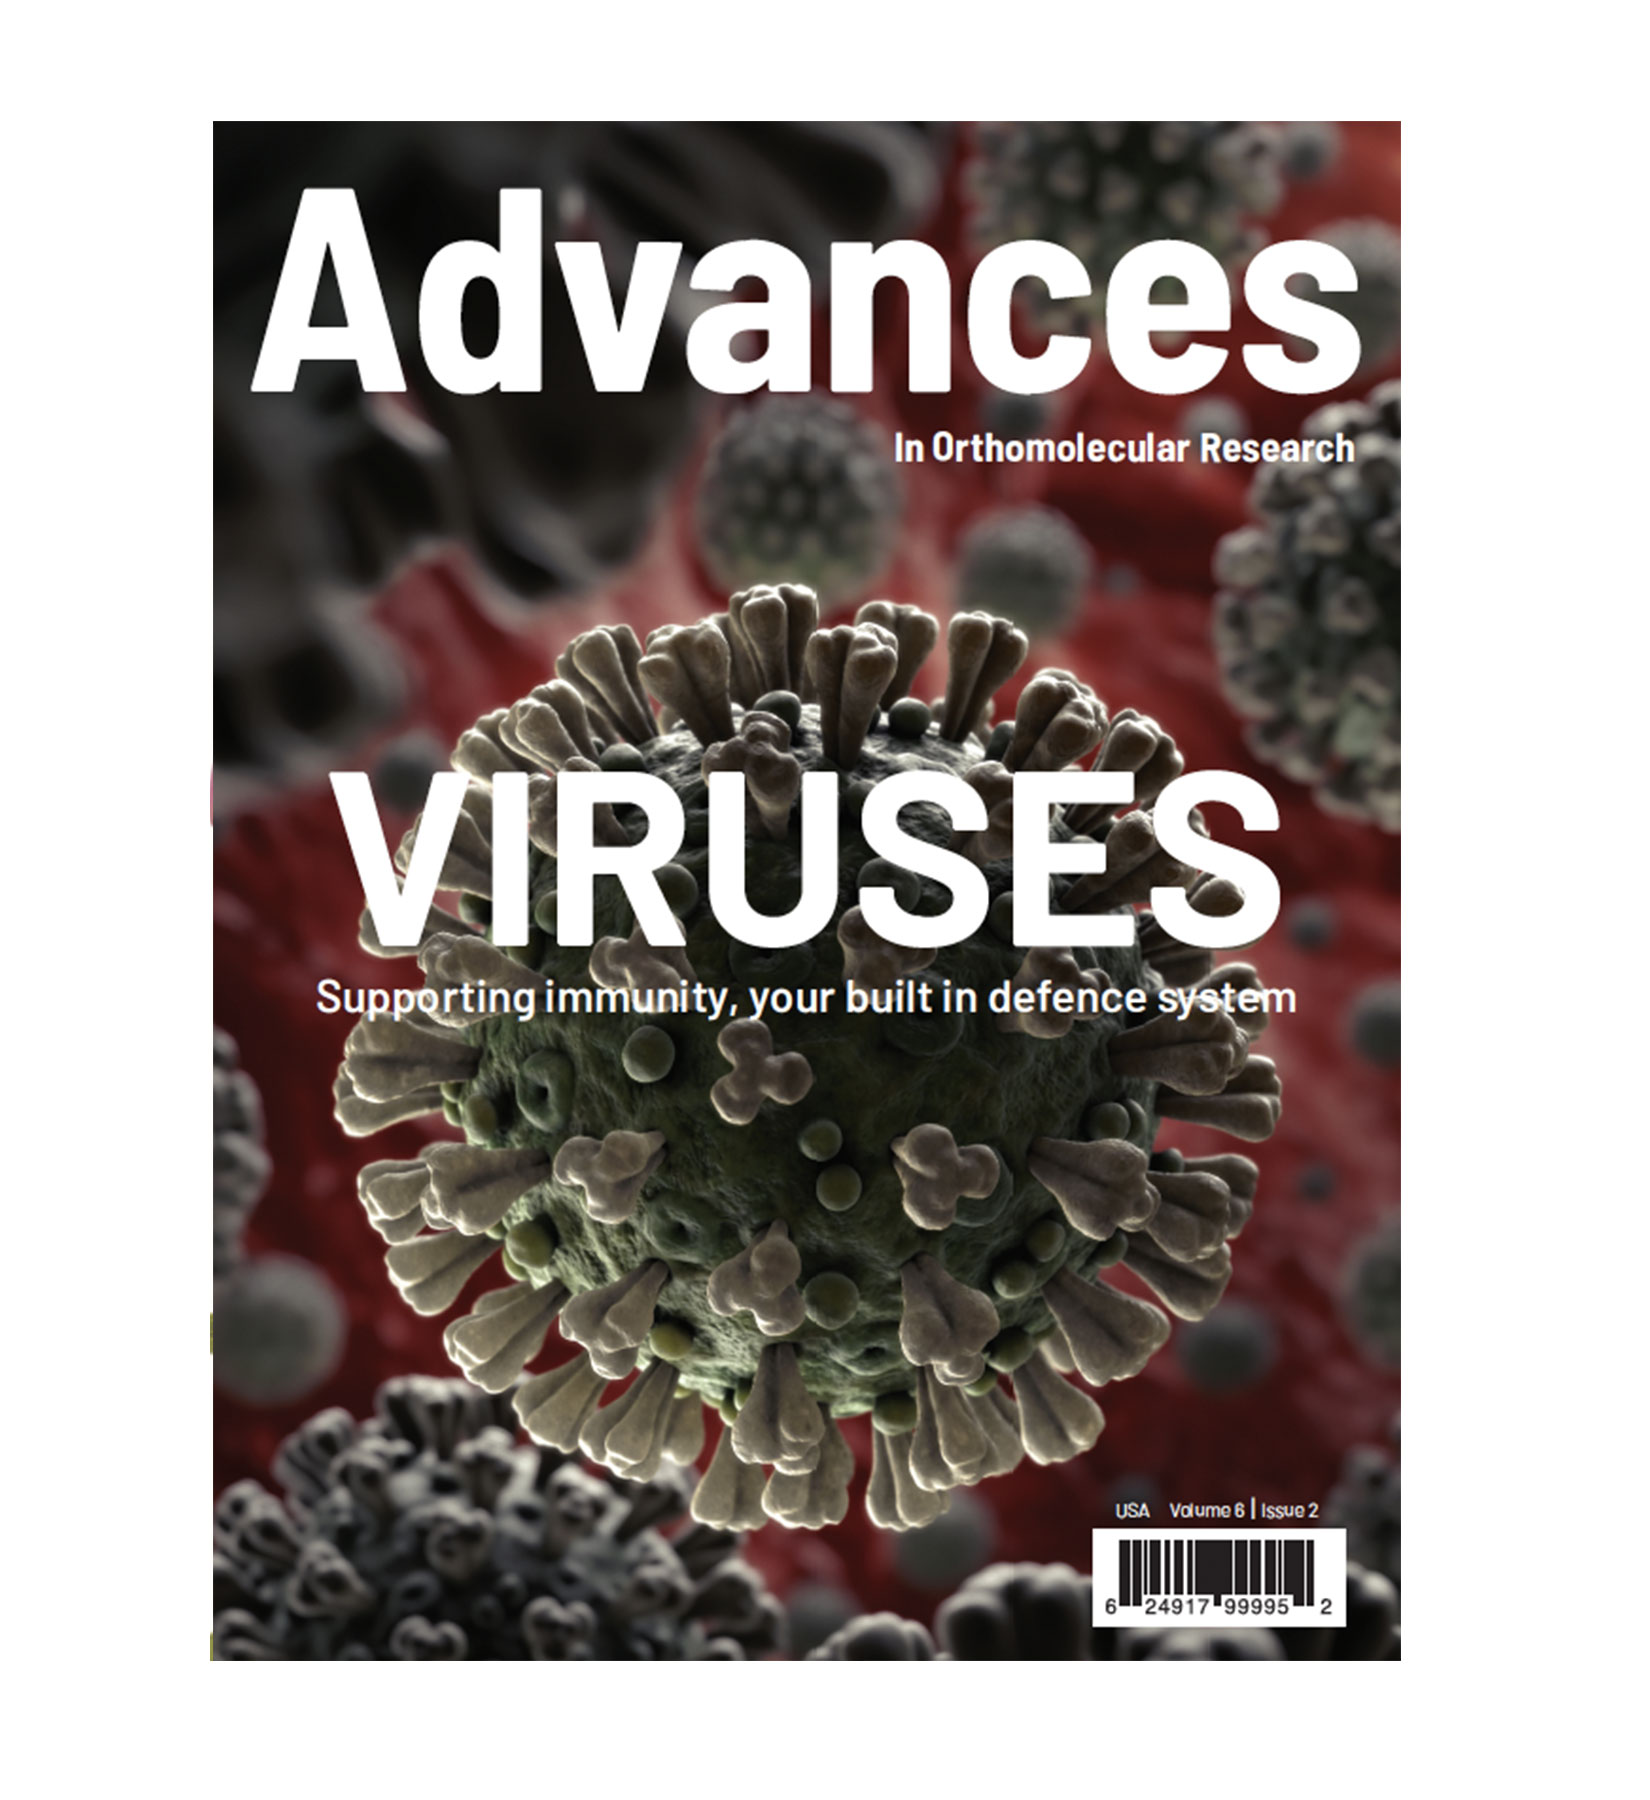 Viruses – Supporting immunity